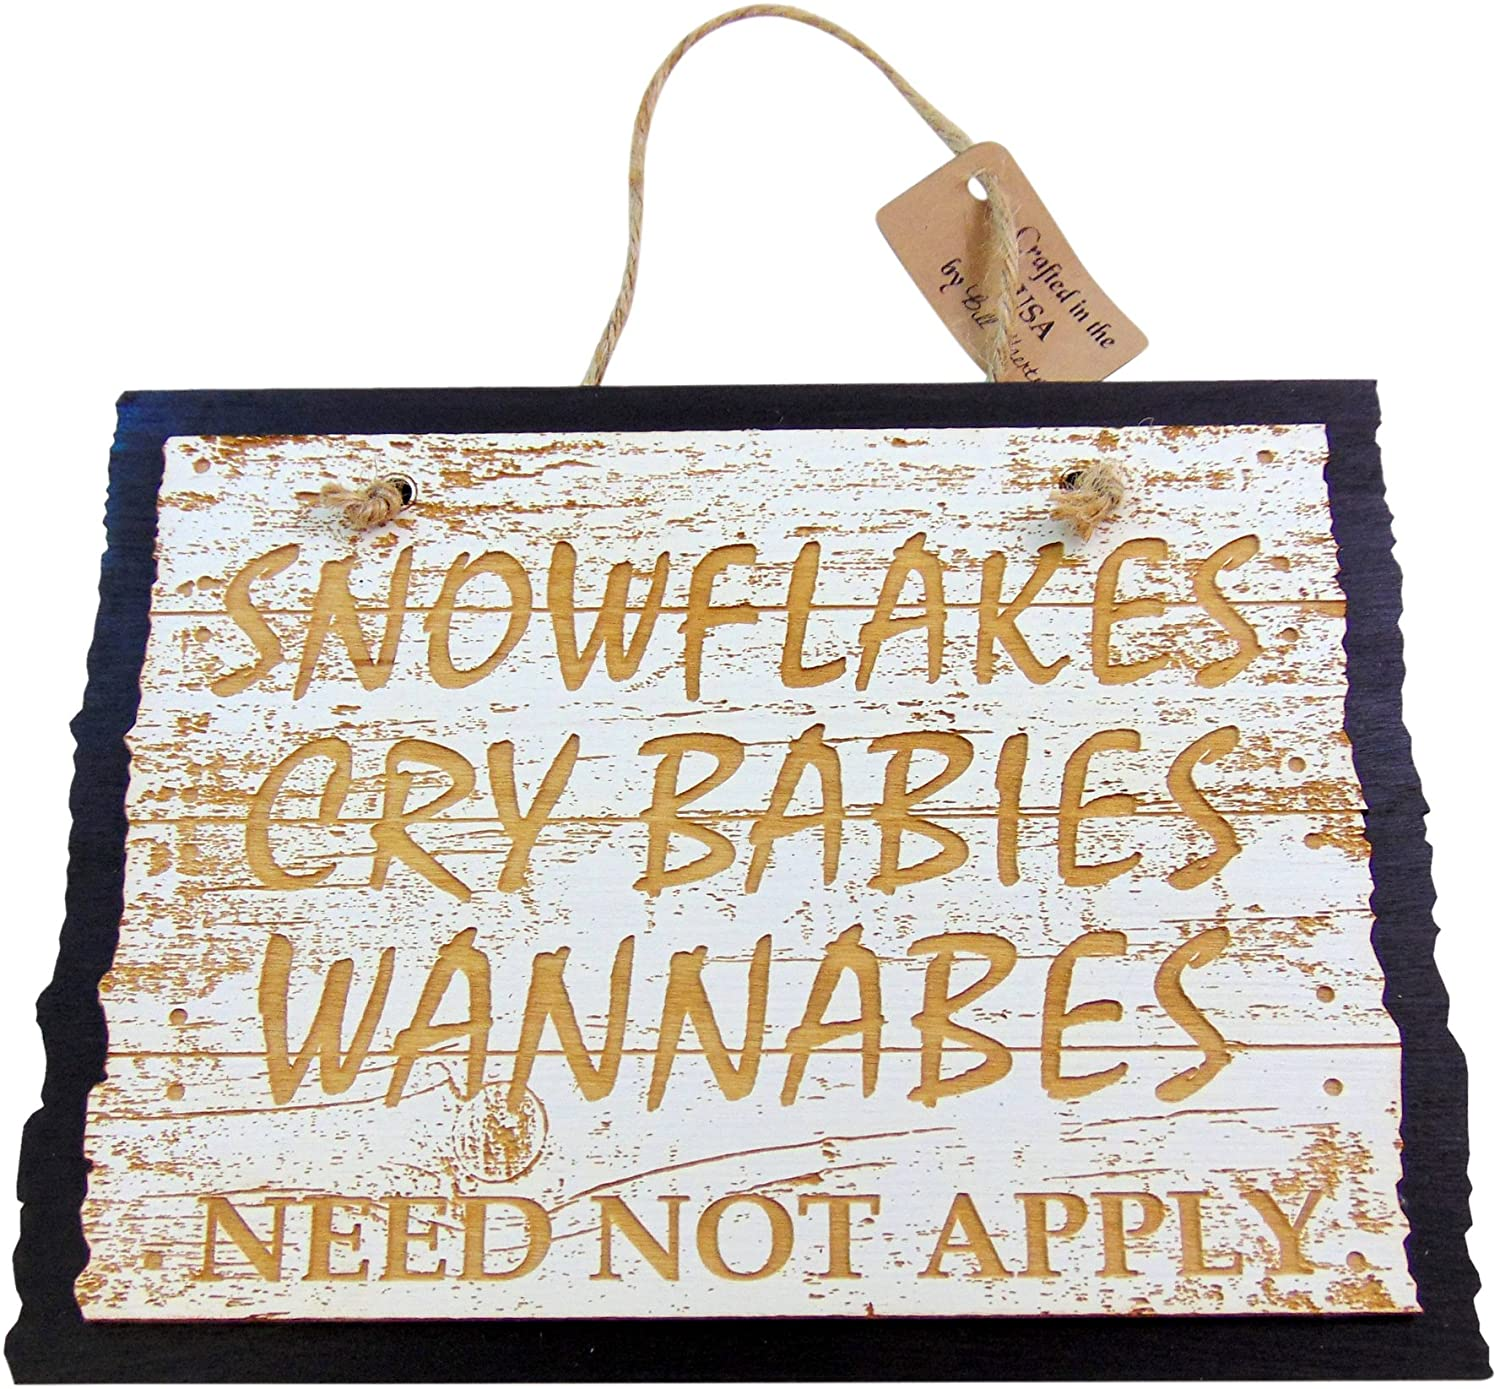 Westman Works Snowflakes Wannabees and Cry Babies Need Not Apply Sign Funny Wooden Handing Plaque 8 Inches Long